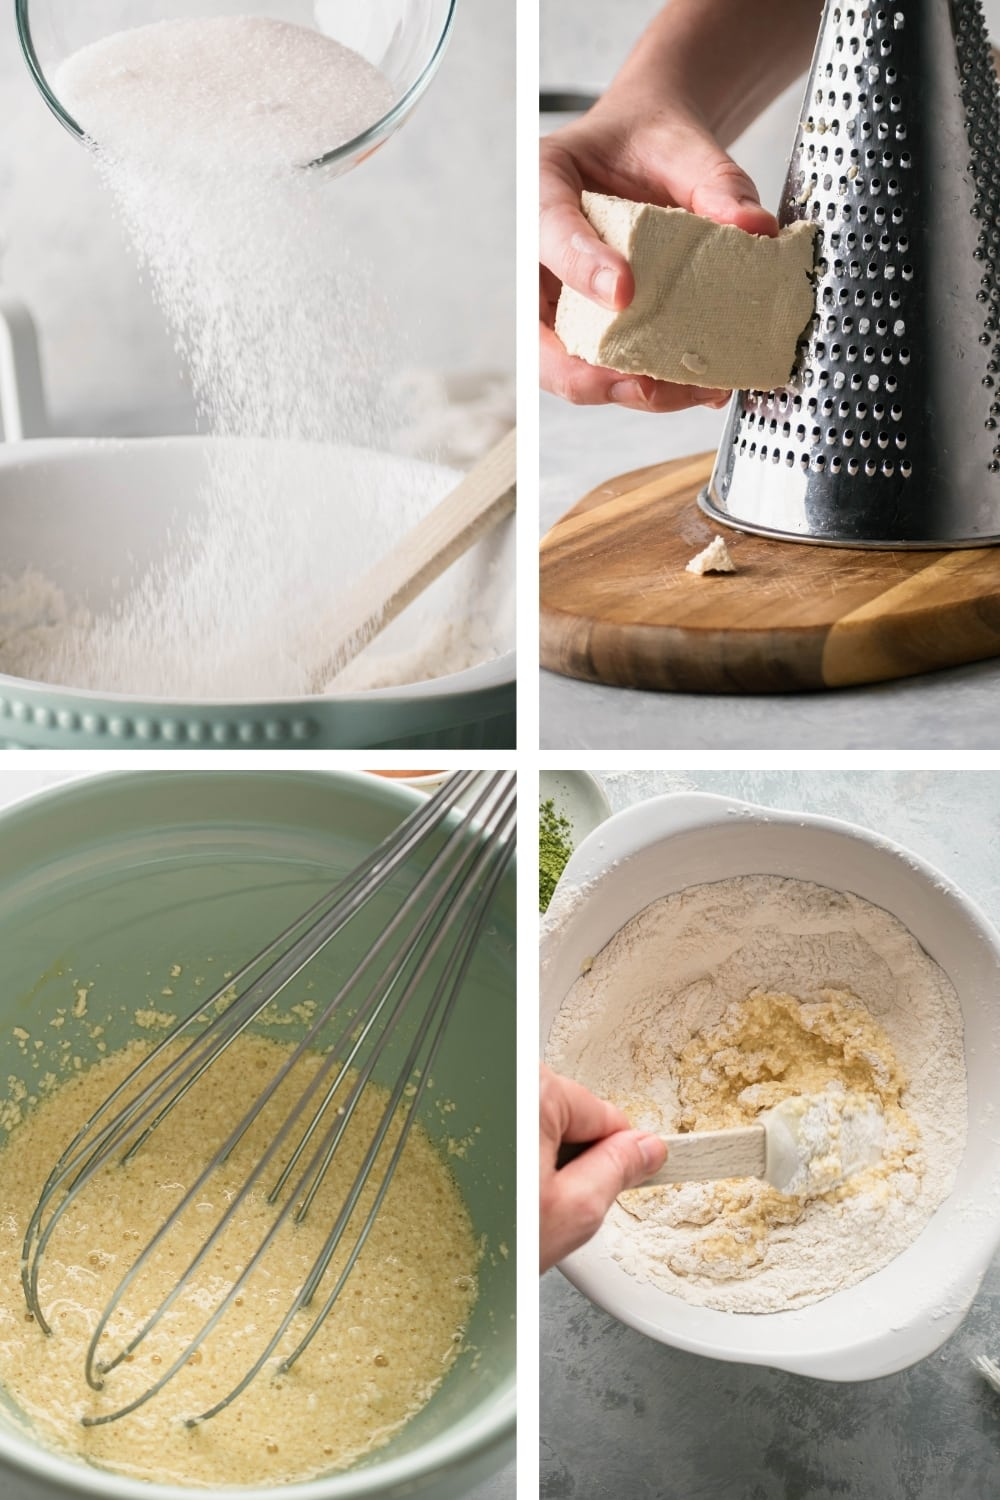 A four way picture showing how to make mochi donuts.